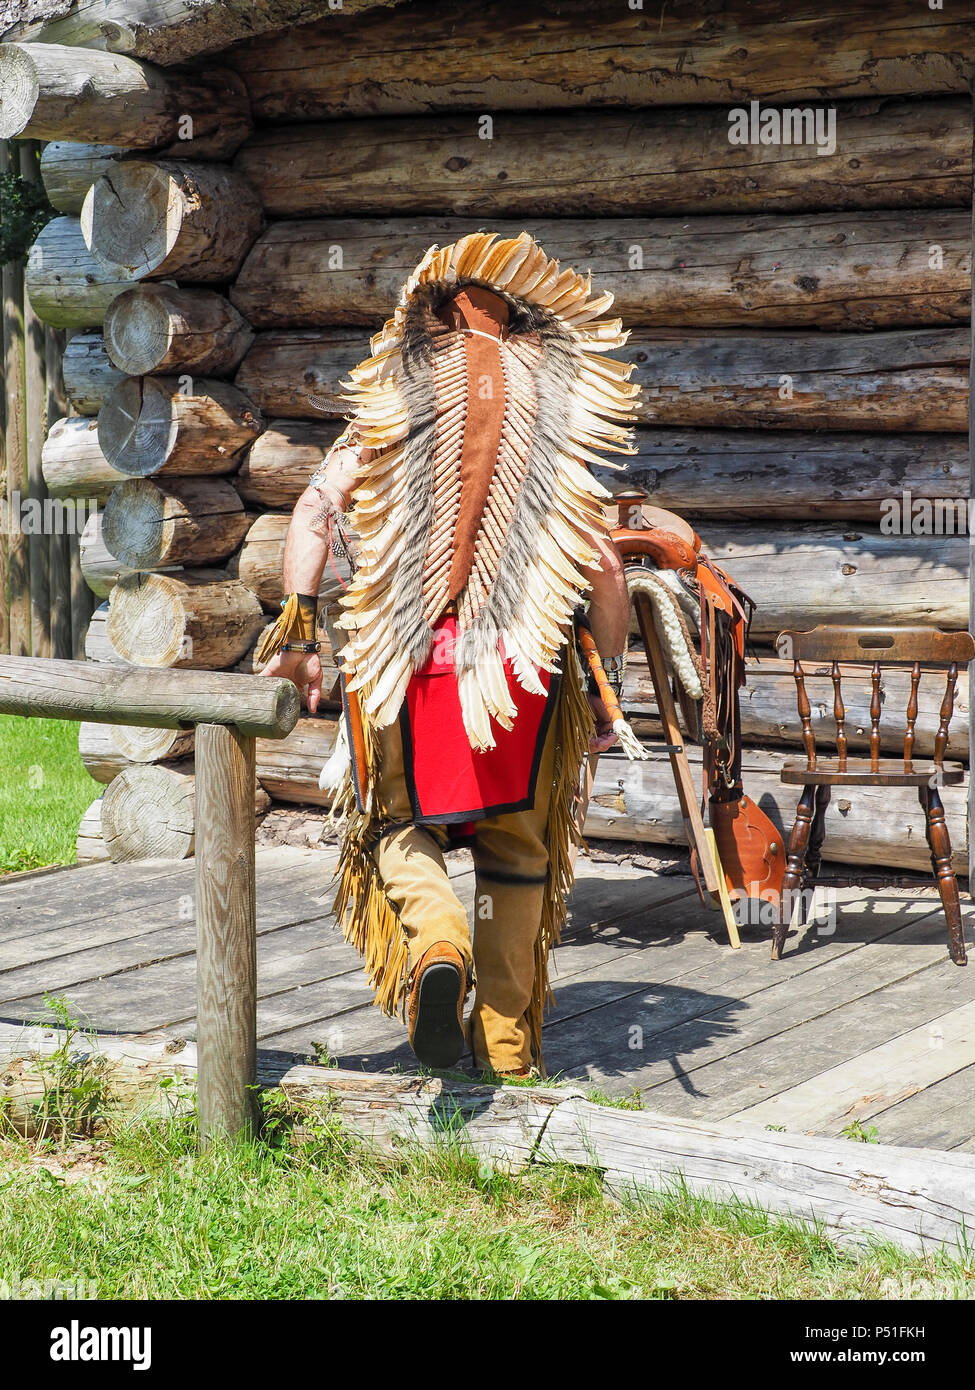 Man backside in costume of American Indian. portrait outdoors. France - Stock Image